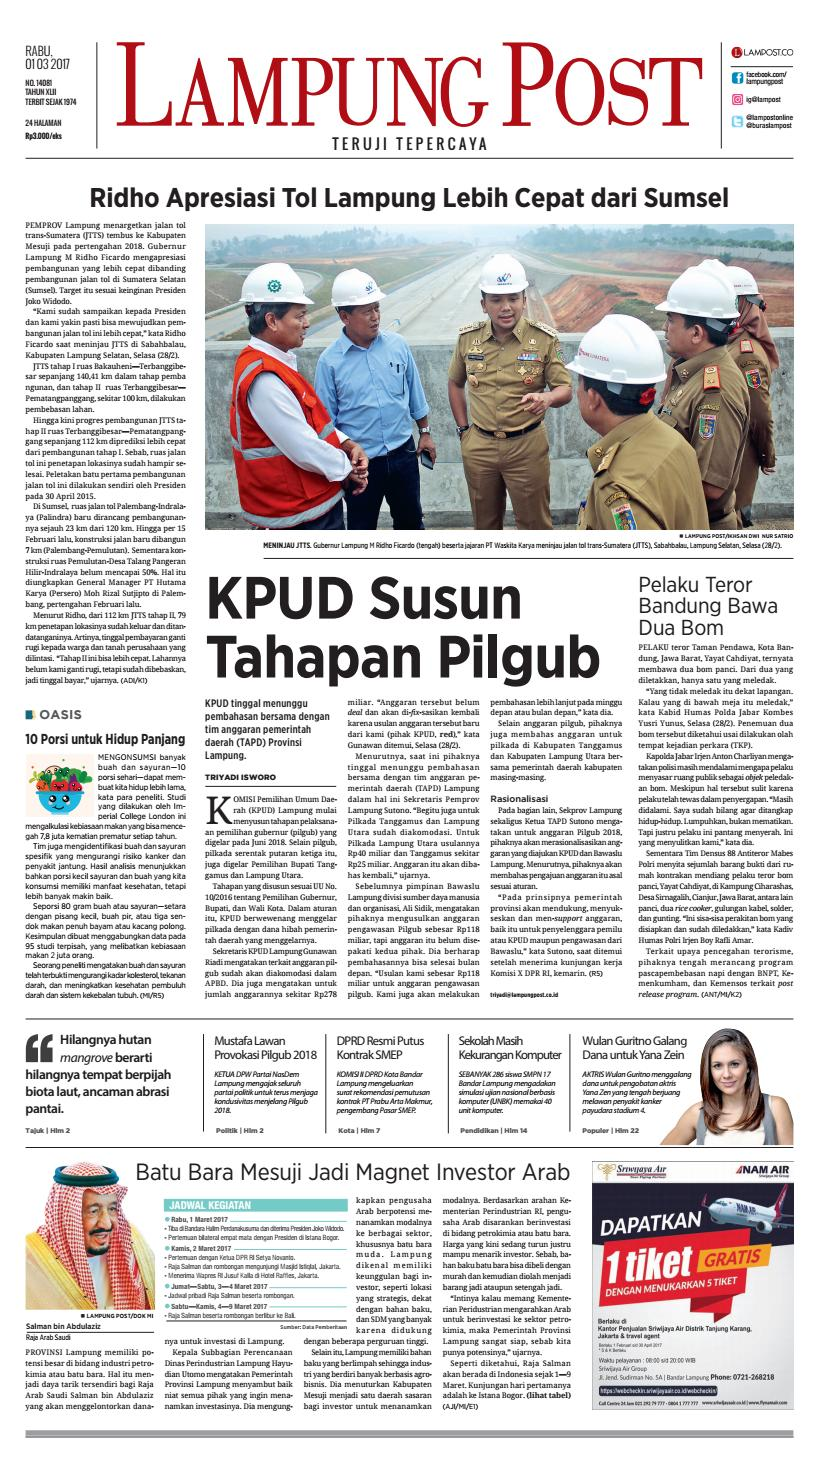 Lampung Post Senin 23 November 2015 By Lampung Post Issuu # Muebles Koyga Vigo